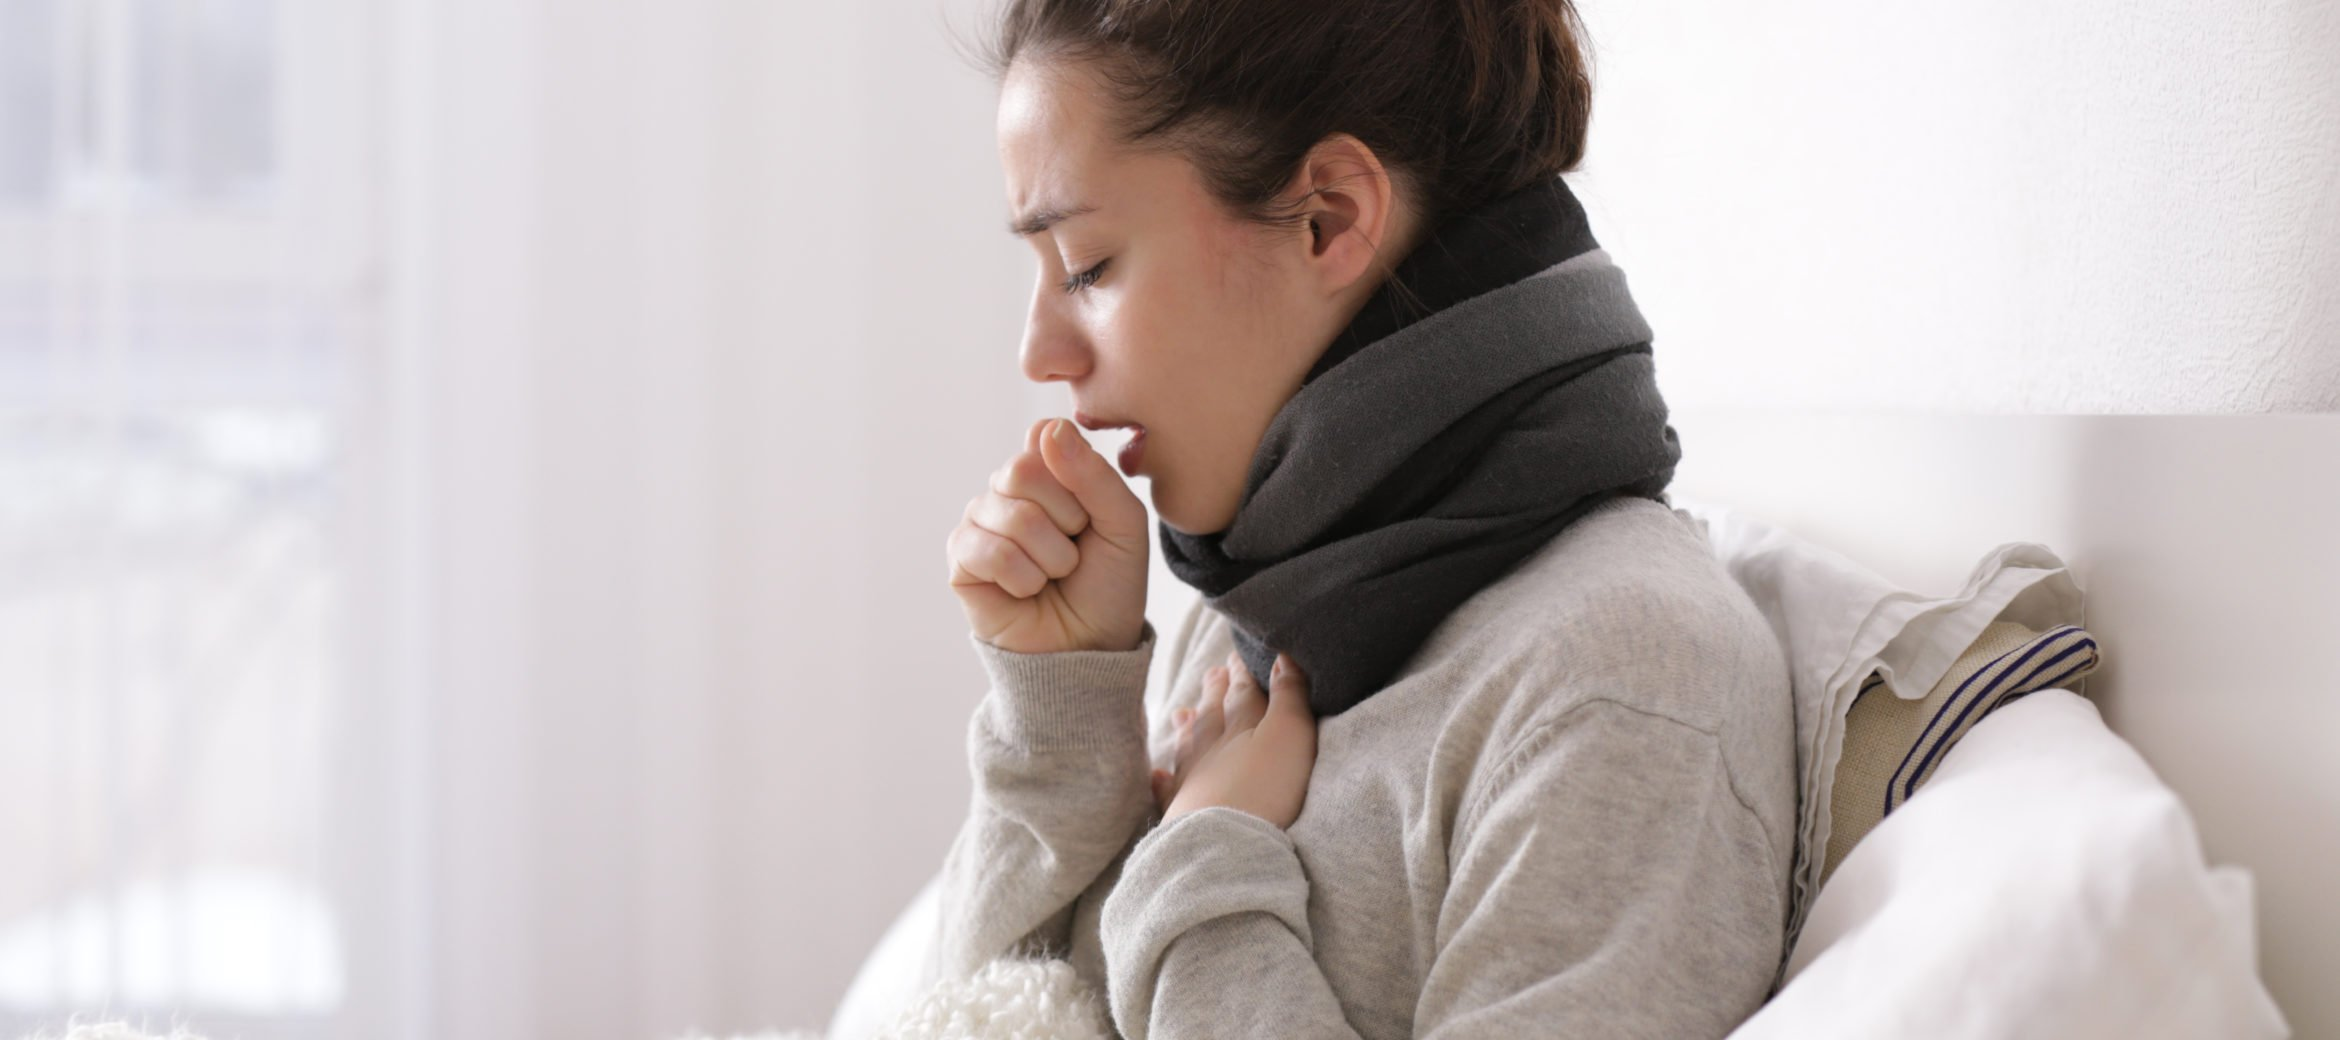 Allergic Cough: Is your loud, barking cough caused by pollen?